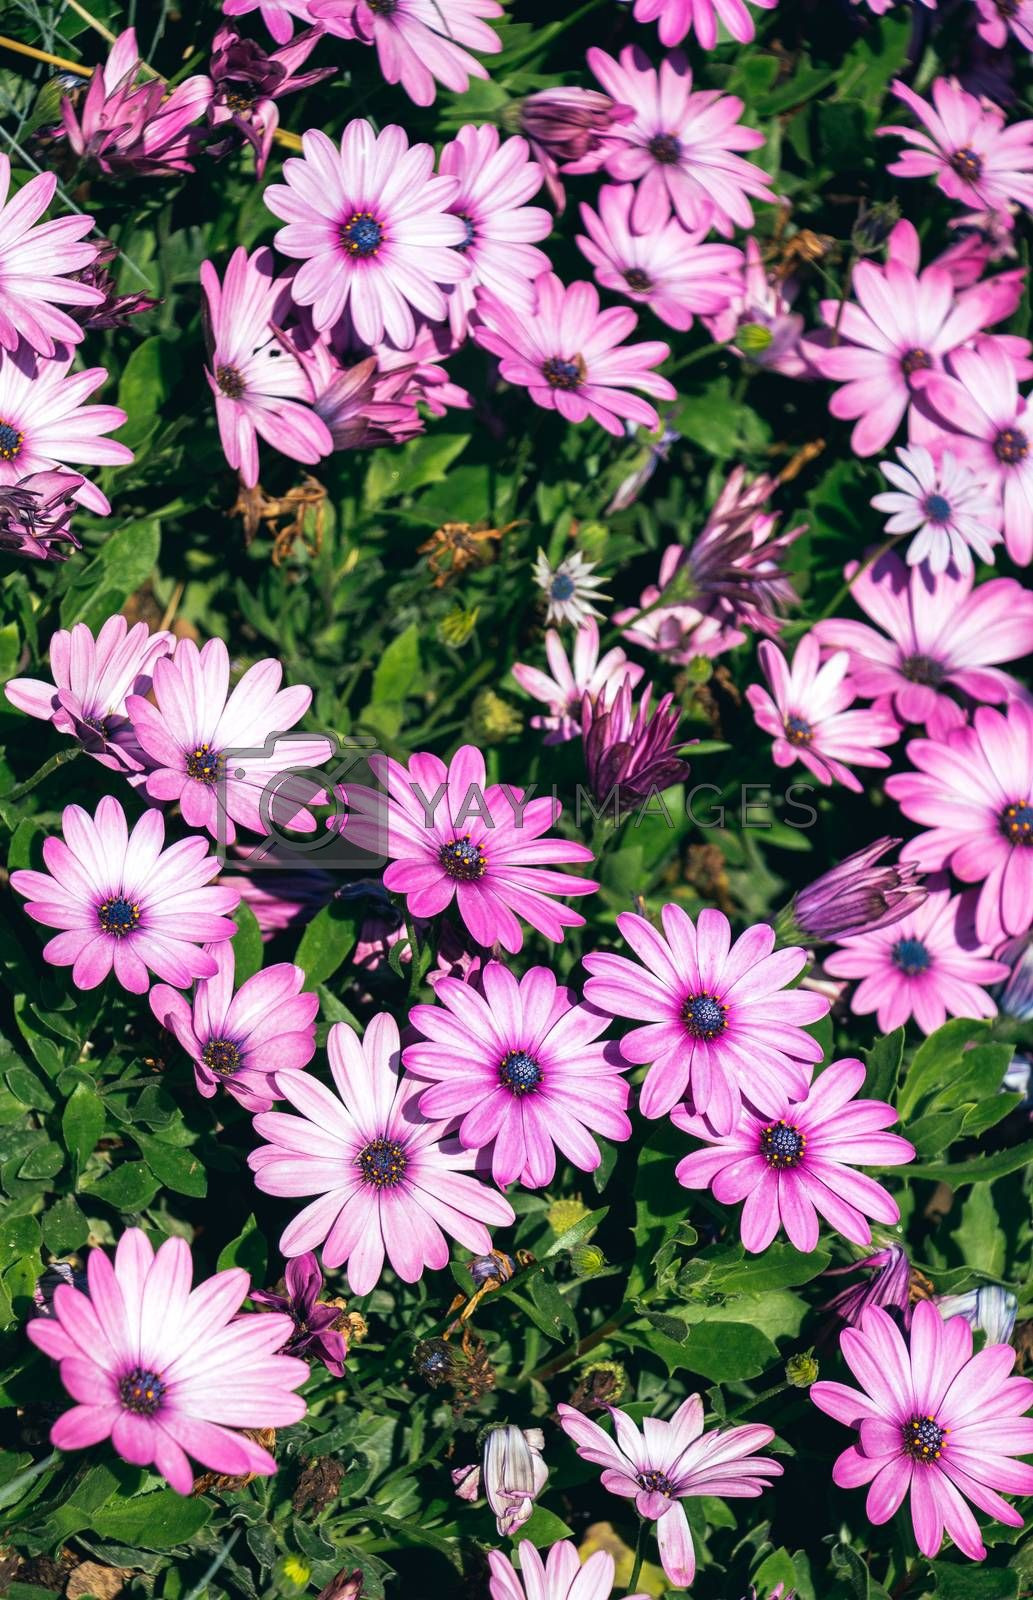 Blooming spring  flowers as a colorful background